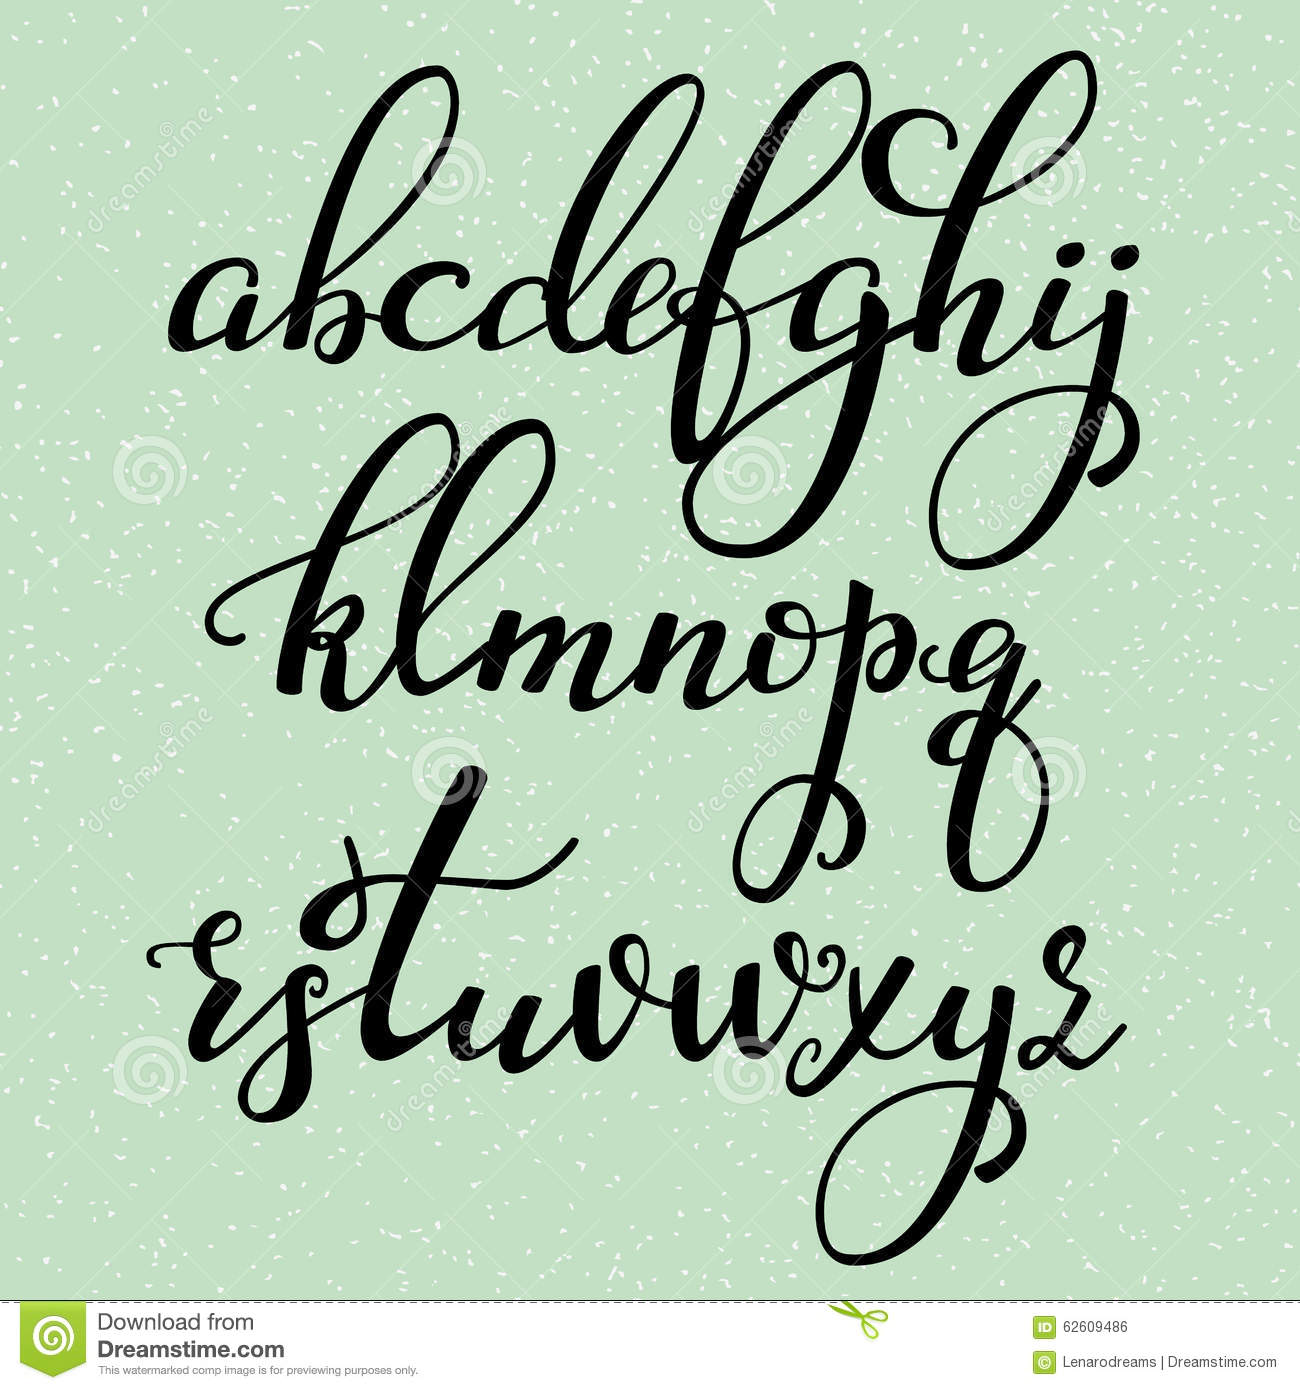 Modern Calligraphy Font Capital: Handwritten Calligraphy Flourish